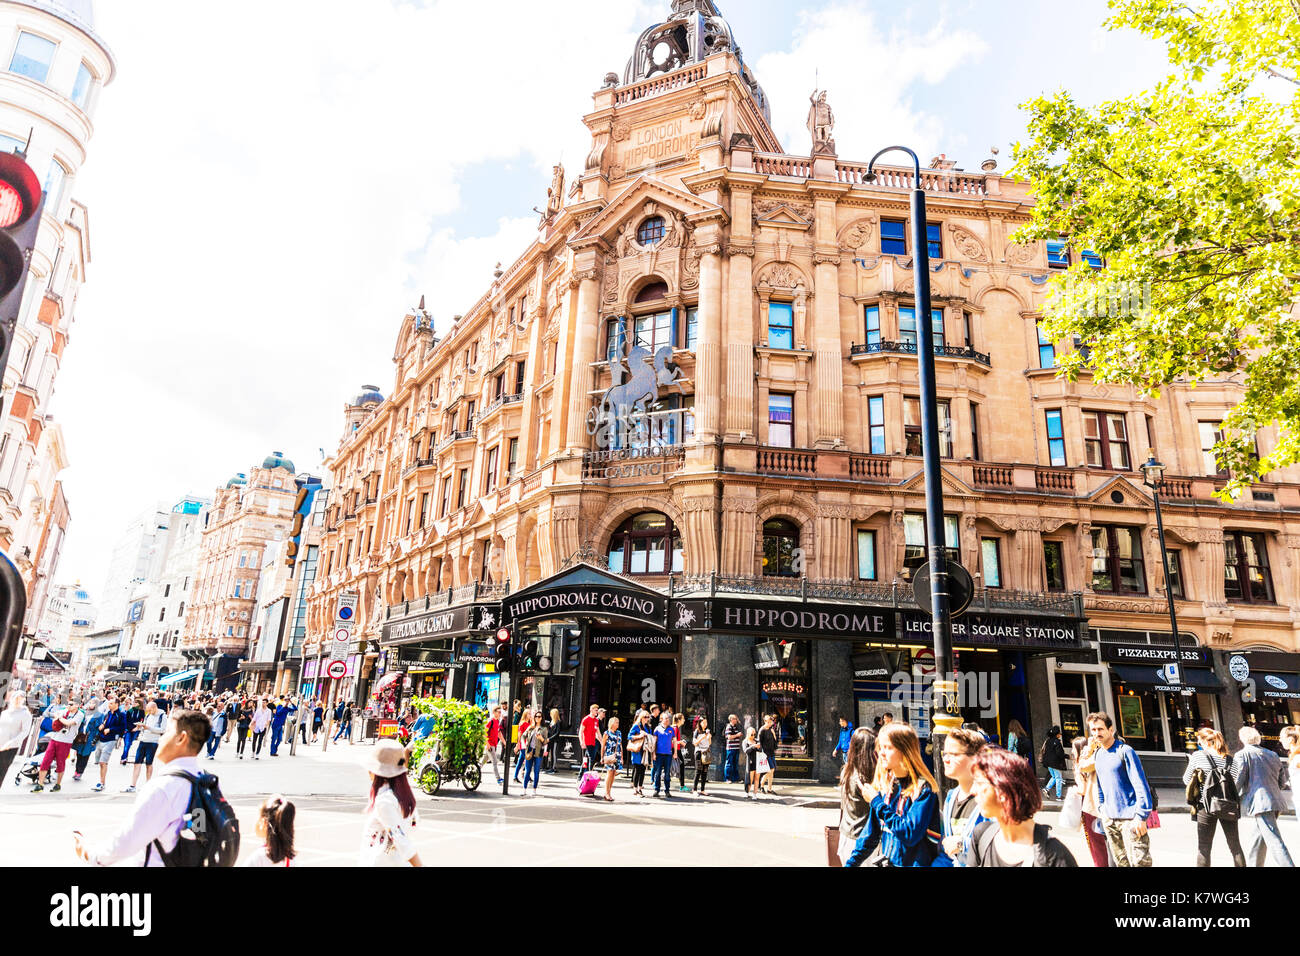 Hippodrome Casino London, Hippodrome Casino, Cranbourn Street, Leicester Square, London WC2H, United Kingdom, Hippodrome London, Hippodrome building - Stock Image